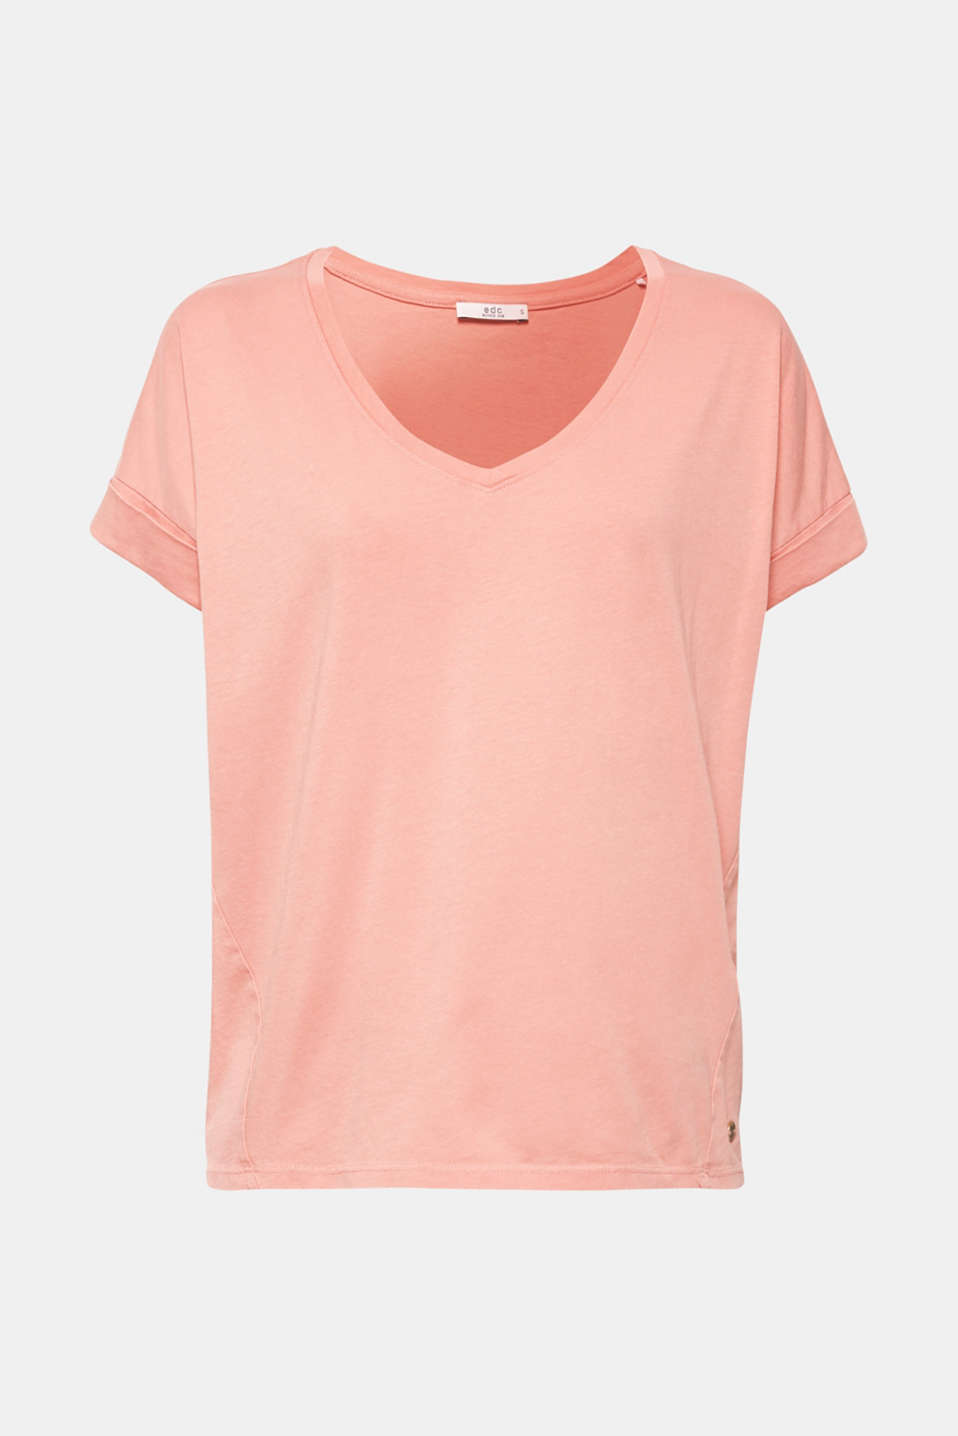 T-shirt with a casual cut, 100% cotton, BLUSH, detail image number 7